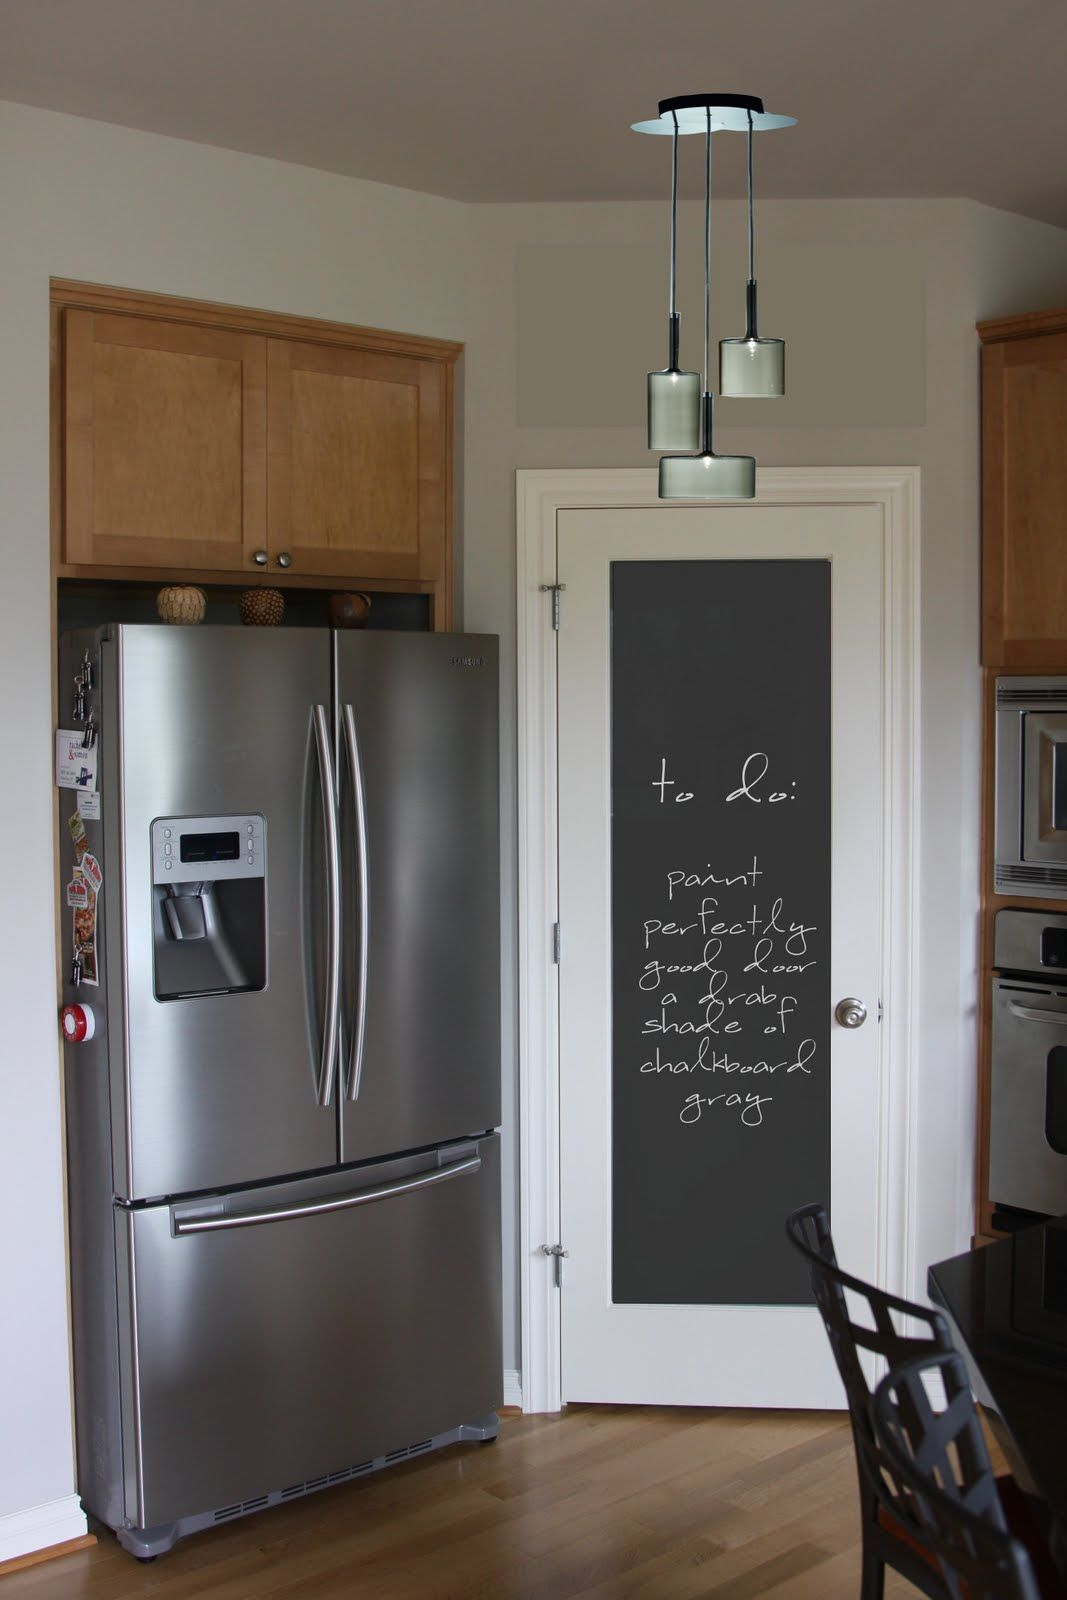 Diy kitchen pantry - Bold Beautiful Brainy A Life Well Lived The Wish List Kitchen Pantry Door